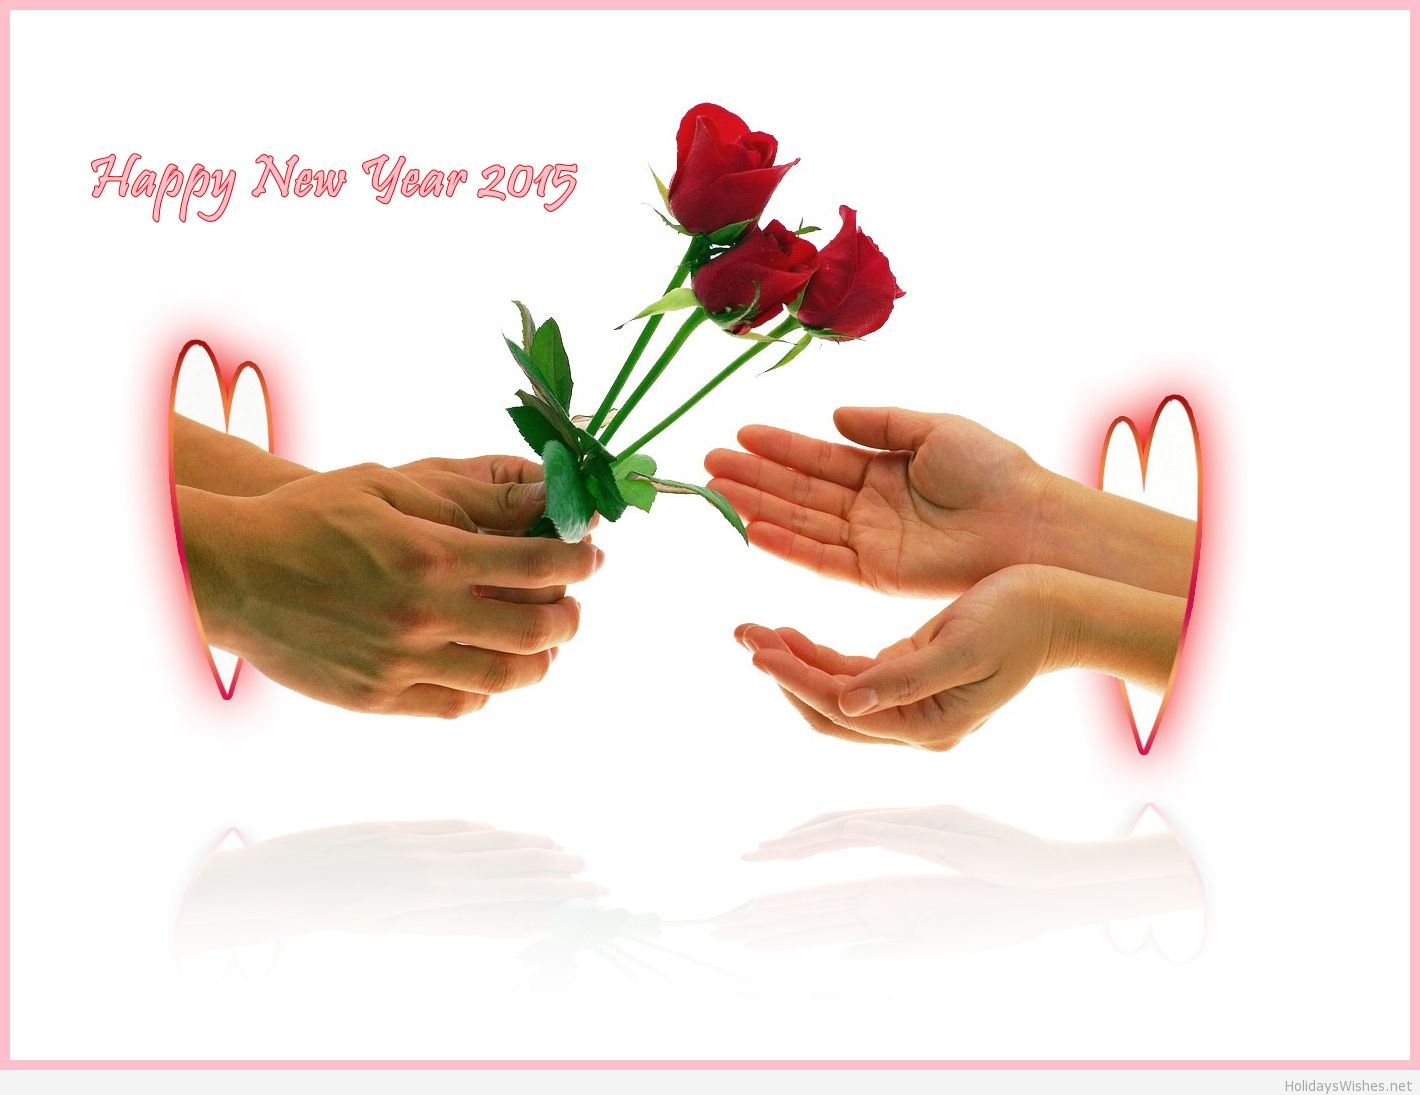 Happy New Year Love Hd Wallpapers Copy Wallpapers 1420x1095